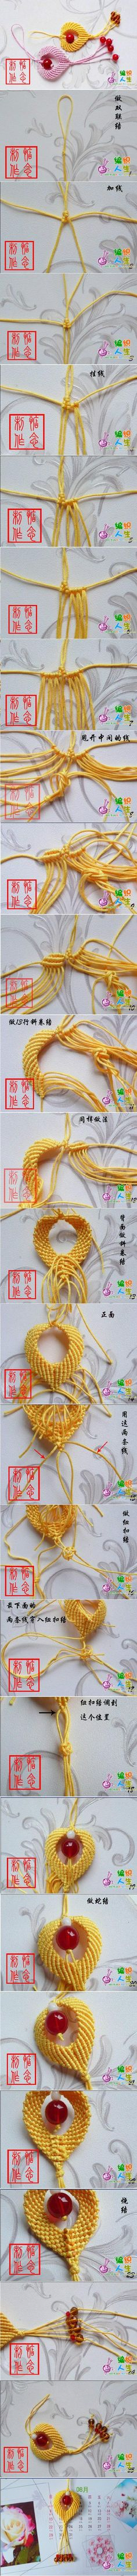 DIY Chinese Knot Heart Ornament DIY Chinese Knot Heart Ornament